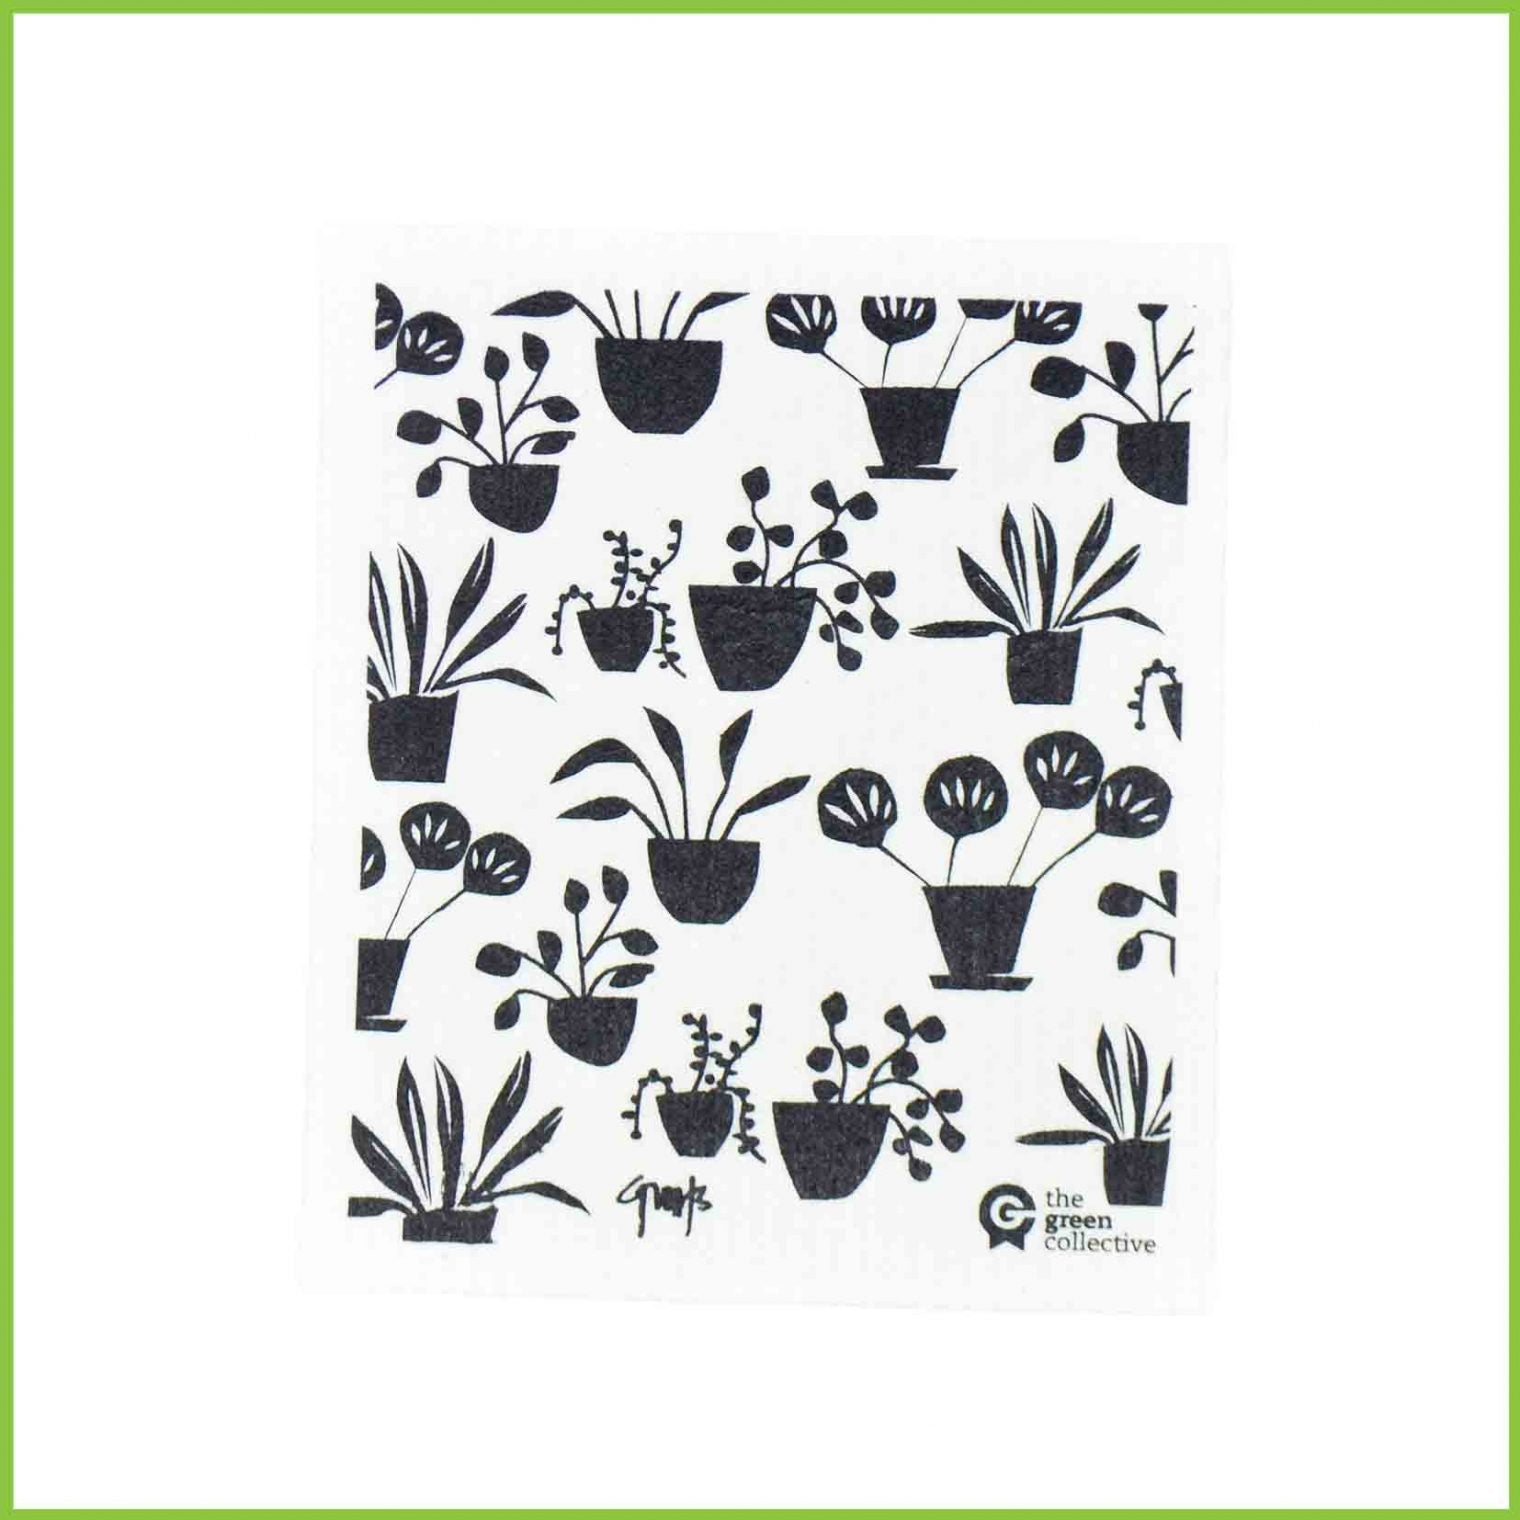 A Spruce cloth from the green collective with a pot plant design.